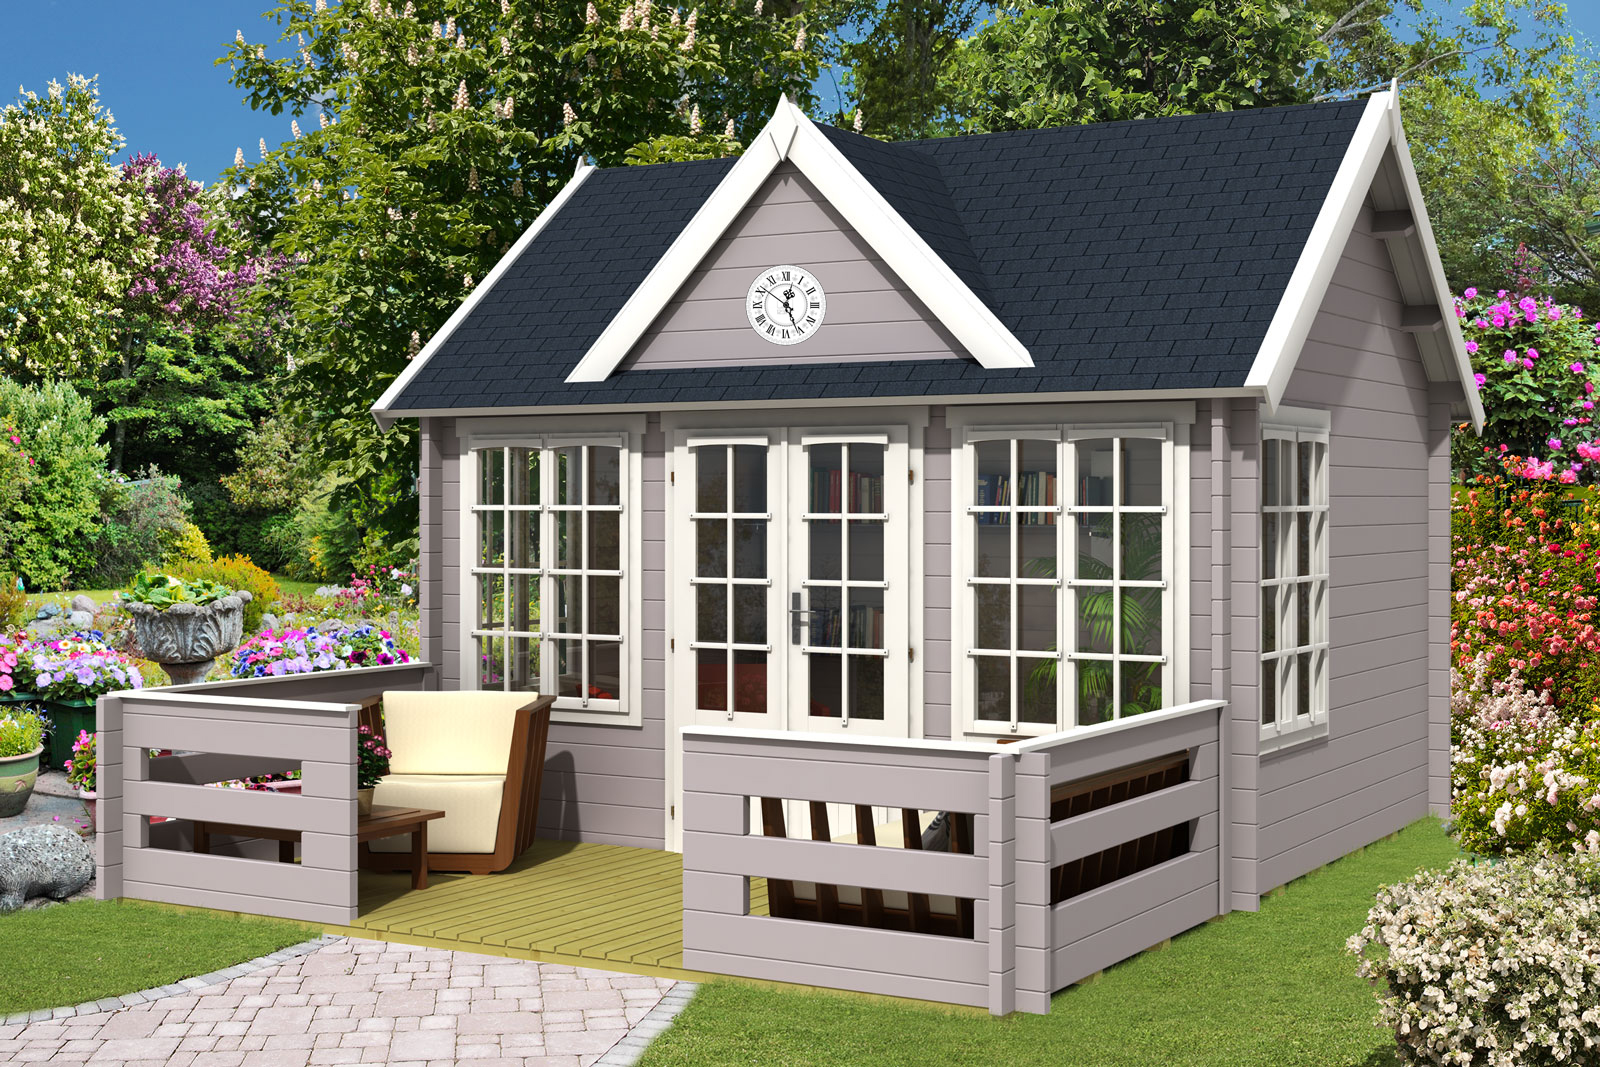 gartenhaus clockhouse 44 royal mit terrasse. Black Bedroom Furniture Sets. Home Design Ideas